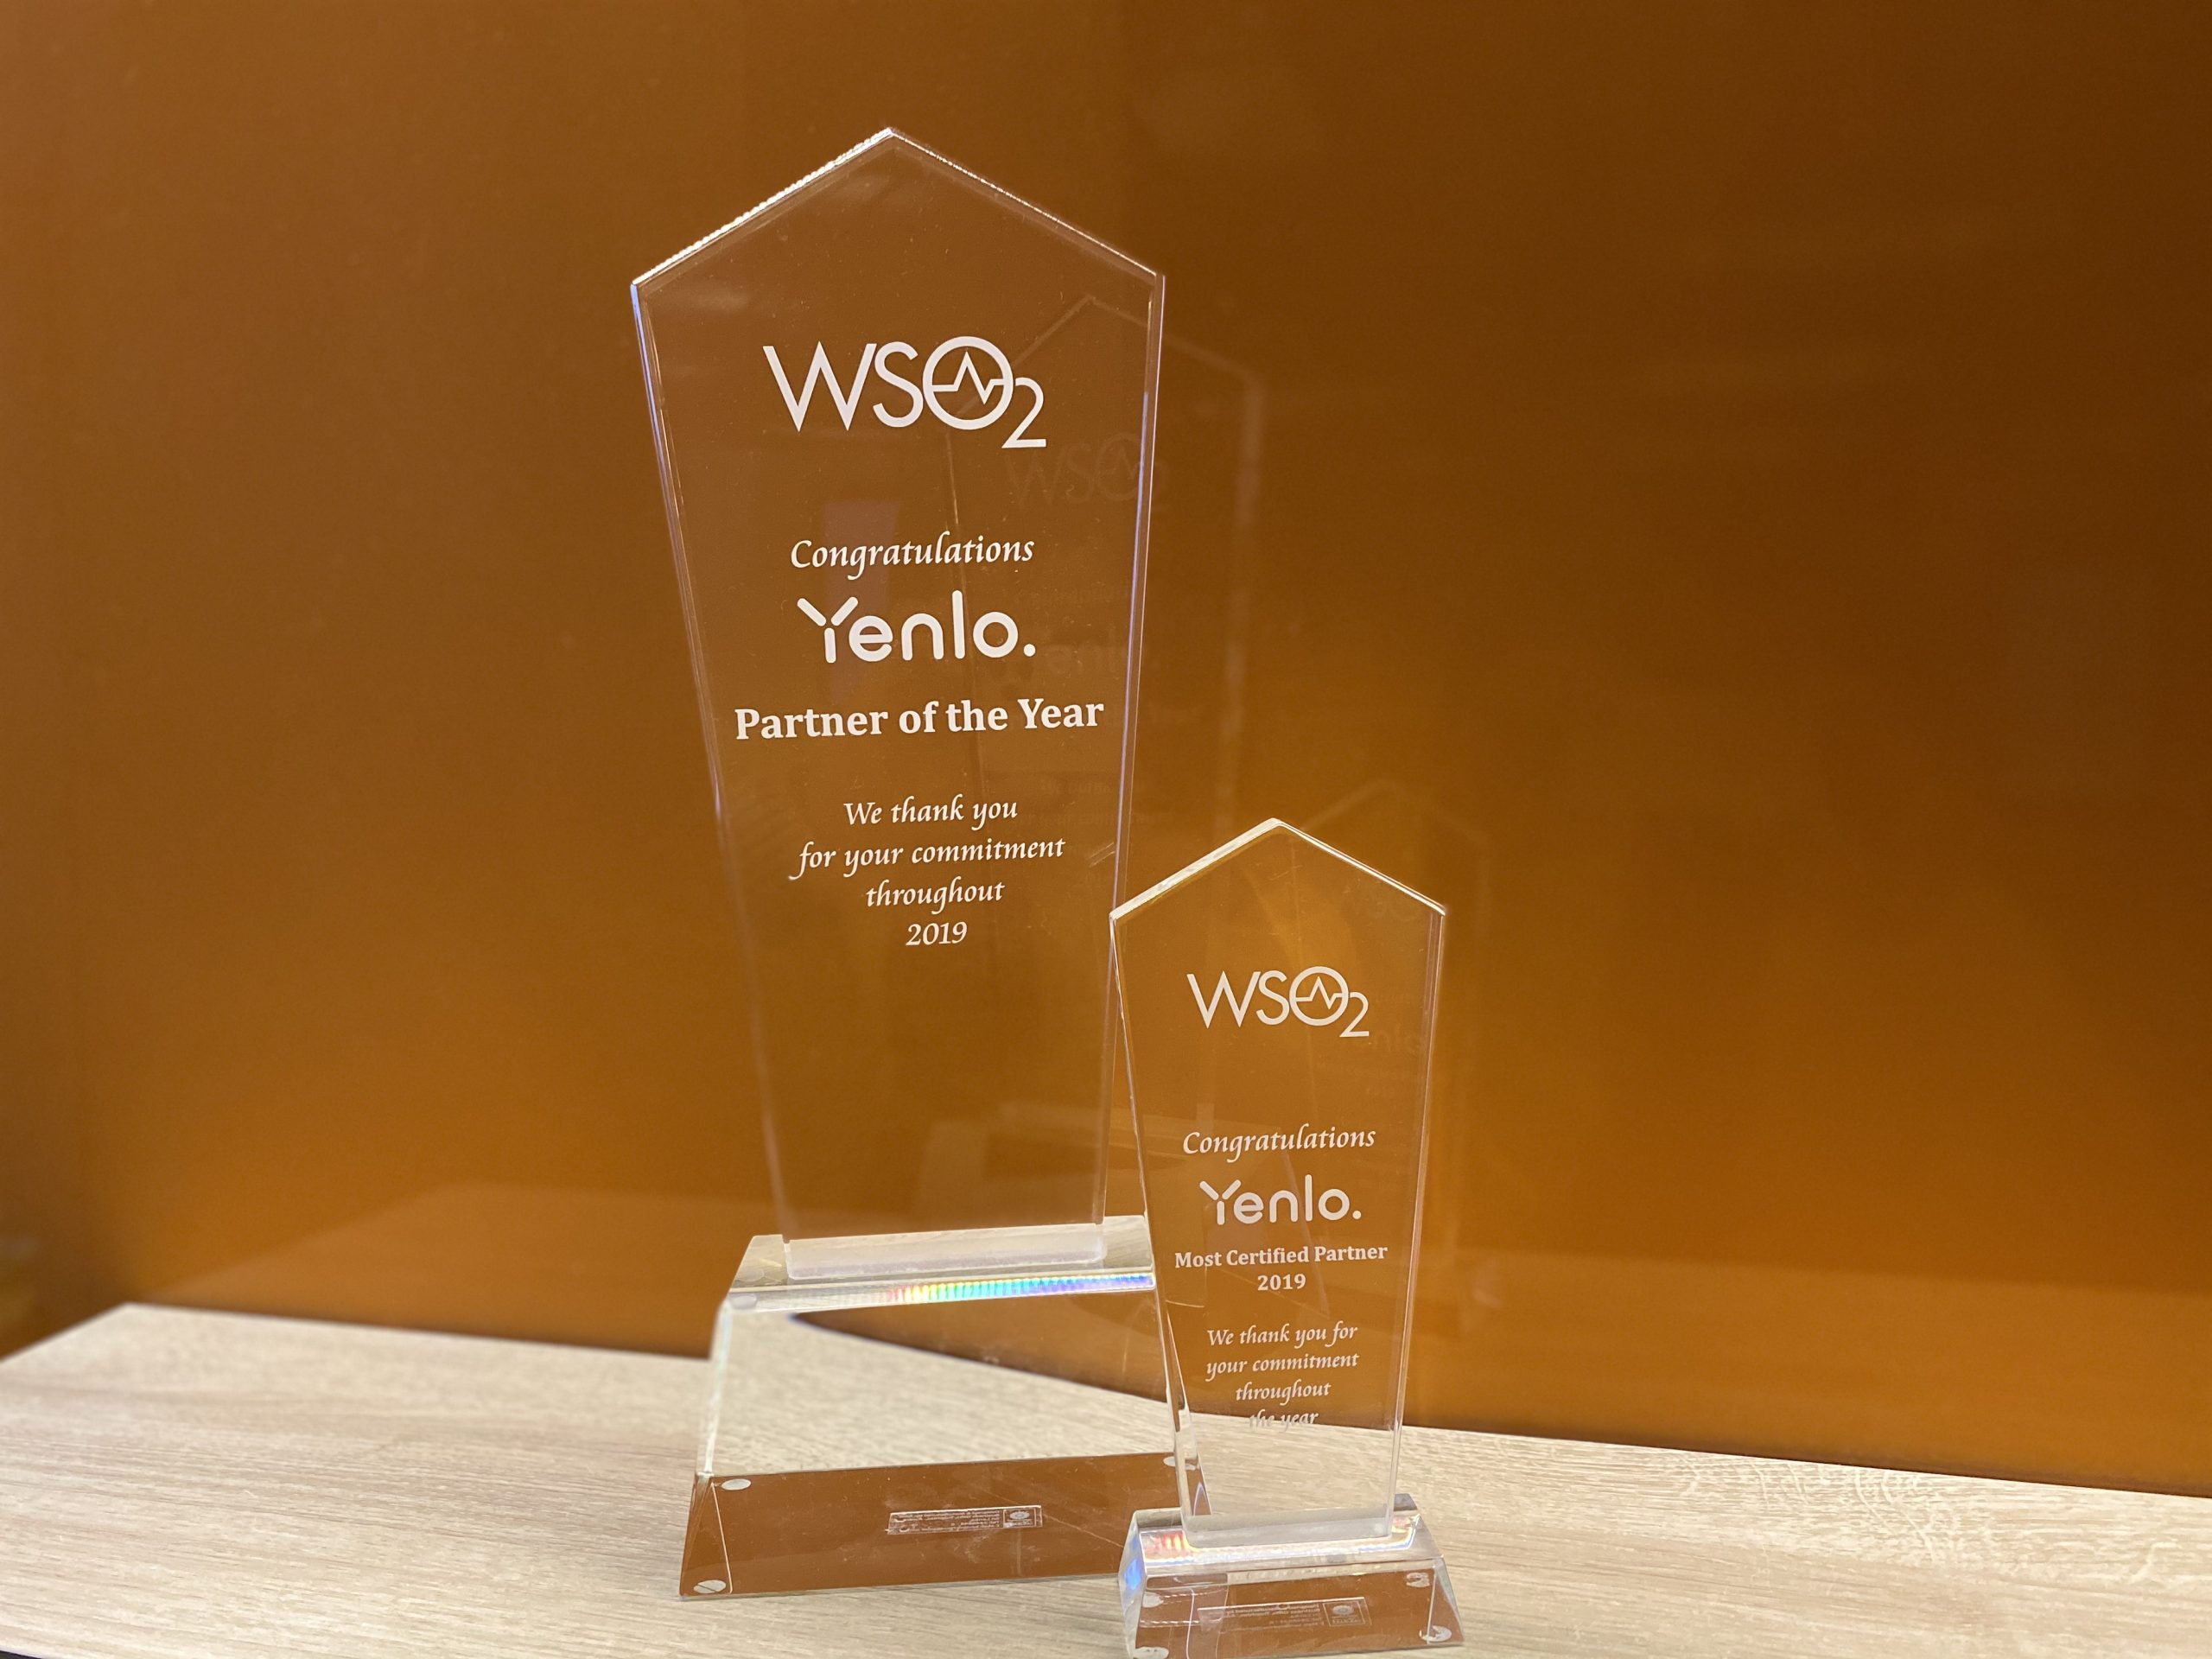 WSO2 Recognizes Integration Specialist Yenlo with Partner of the Year Award 2019